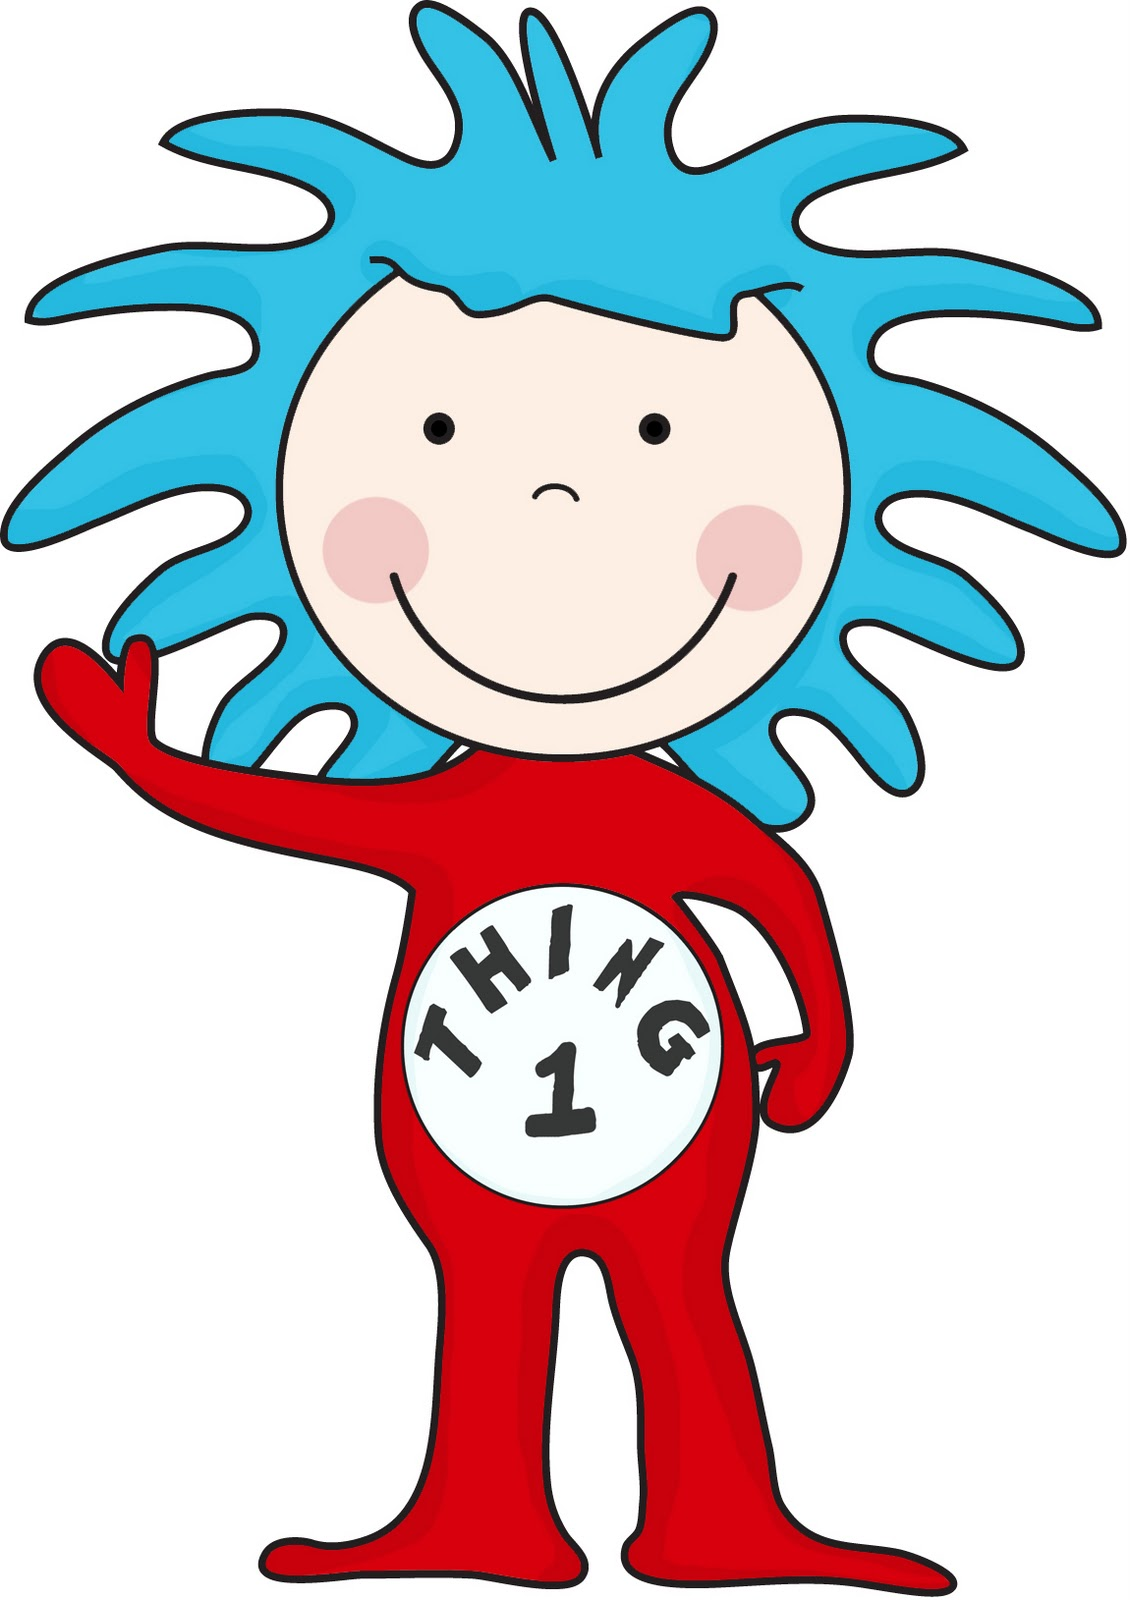 Thing 1 and thing 2 face free clipart vector download Thing 1 And Thing 2 Clipart | Free download best Thing 1 And ... vector download